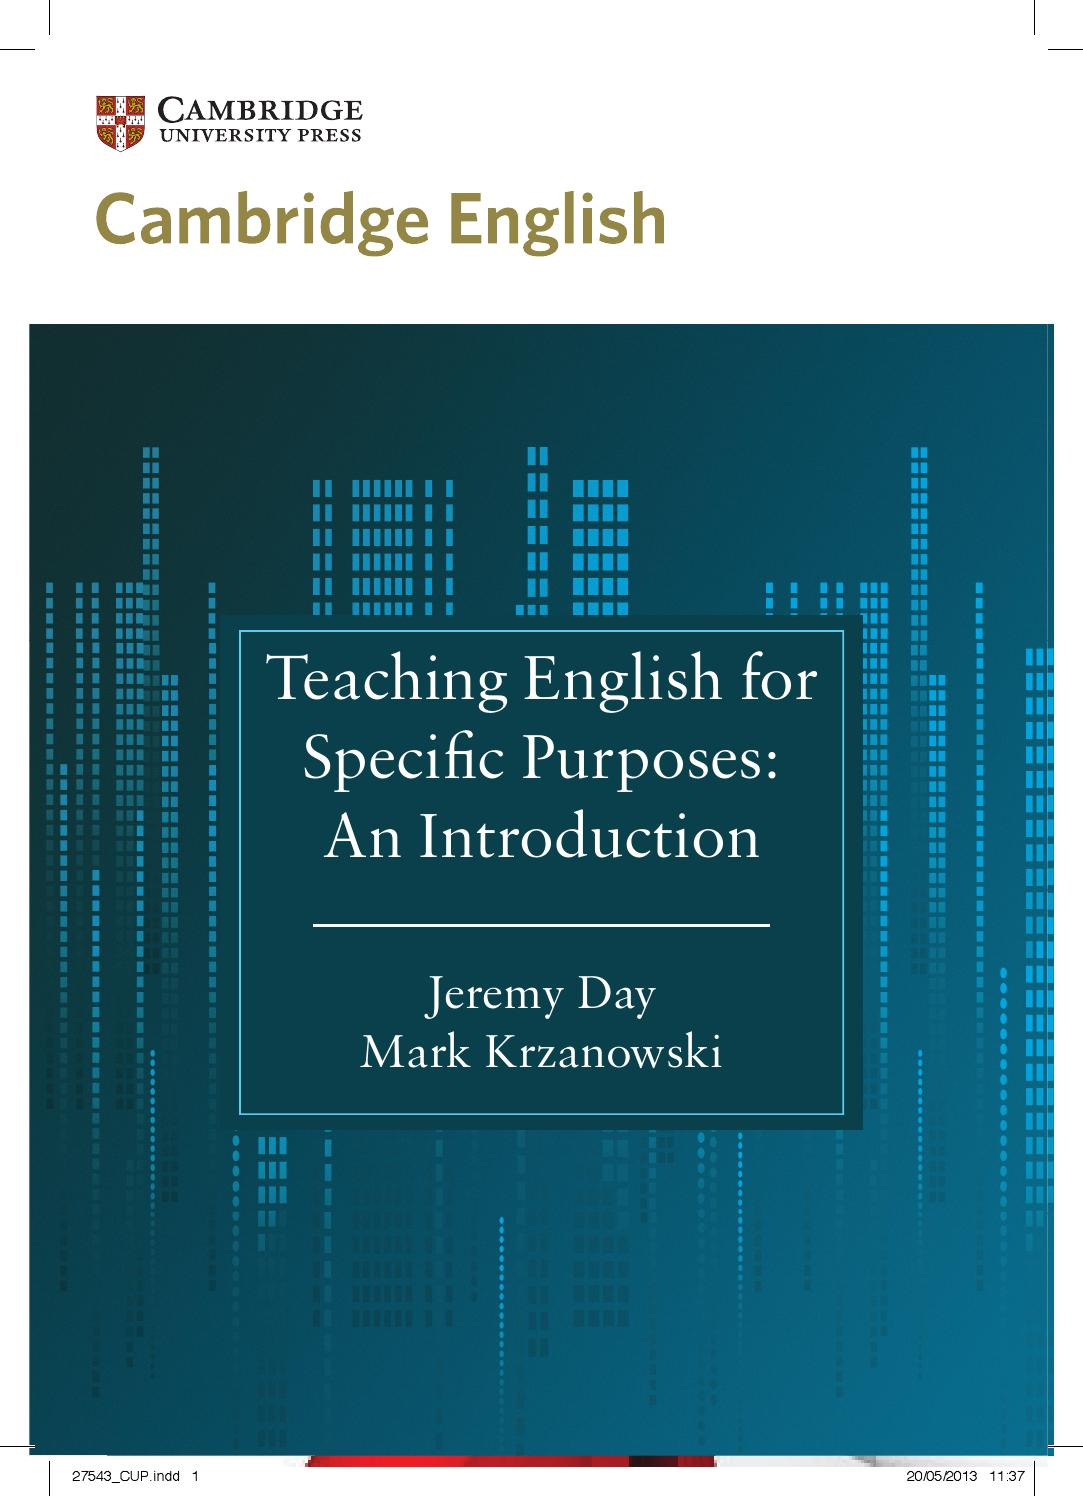 teaching esp an introduction by jeremy day and march krzanowski by